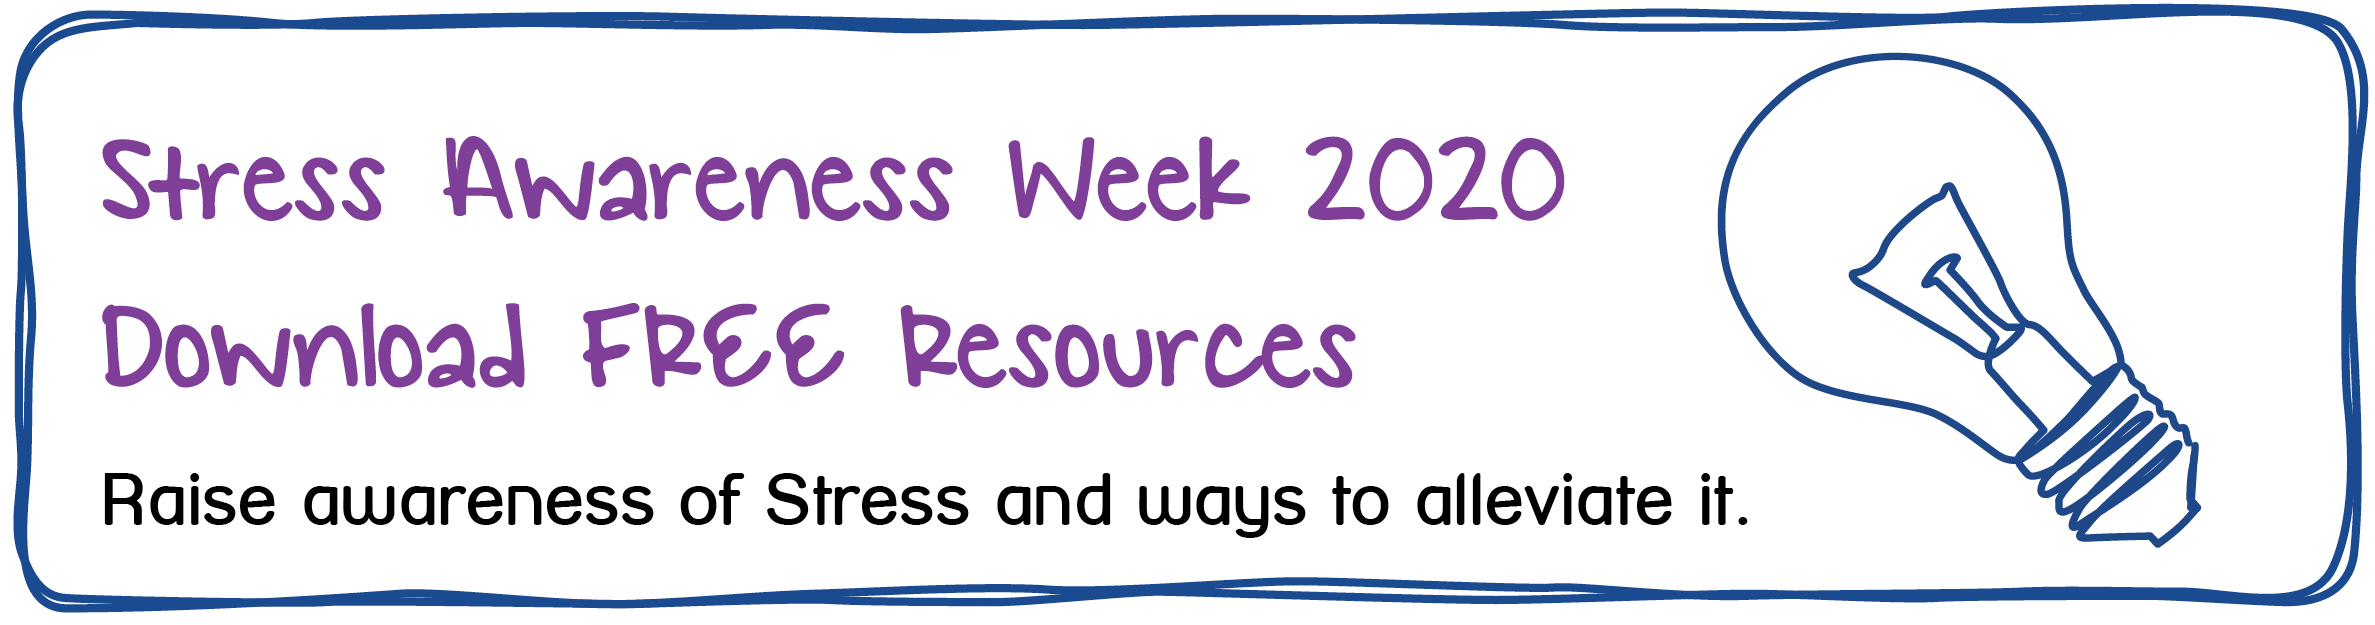 Stress Awareness Week 2020 Download FREE Resources. Raise awareness of Stress and ways to alleviate it.